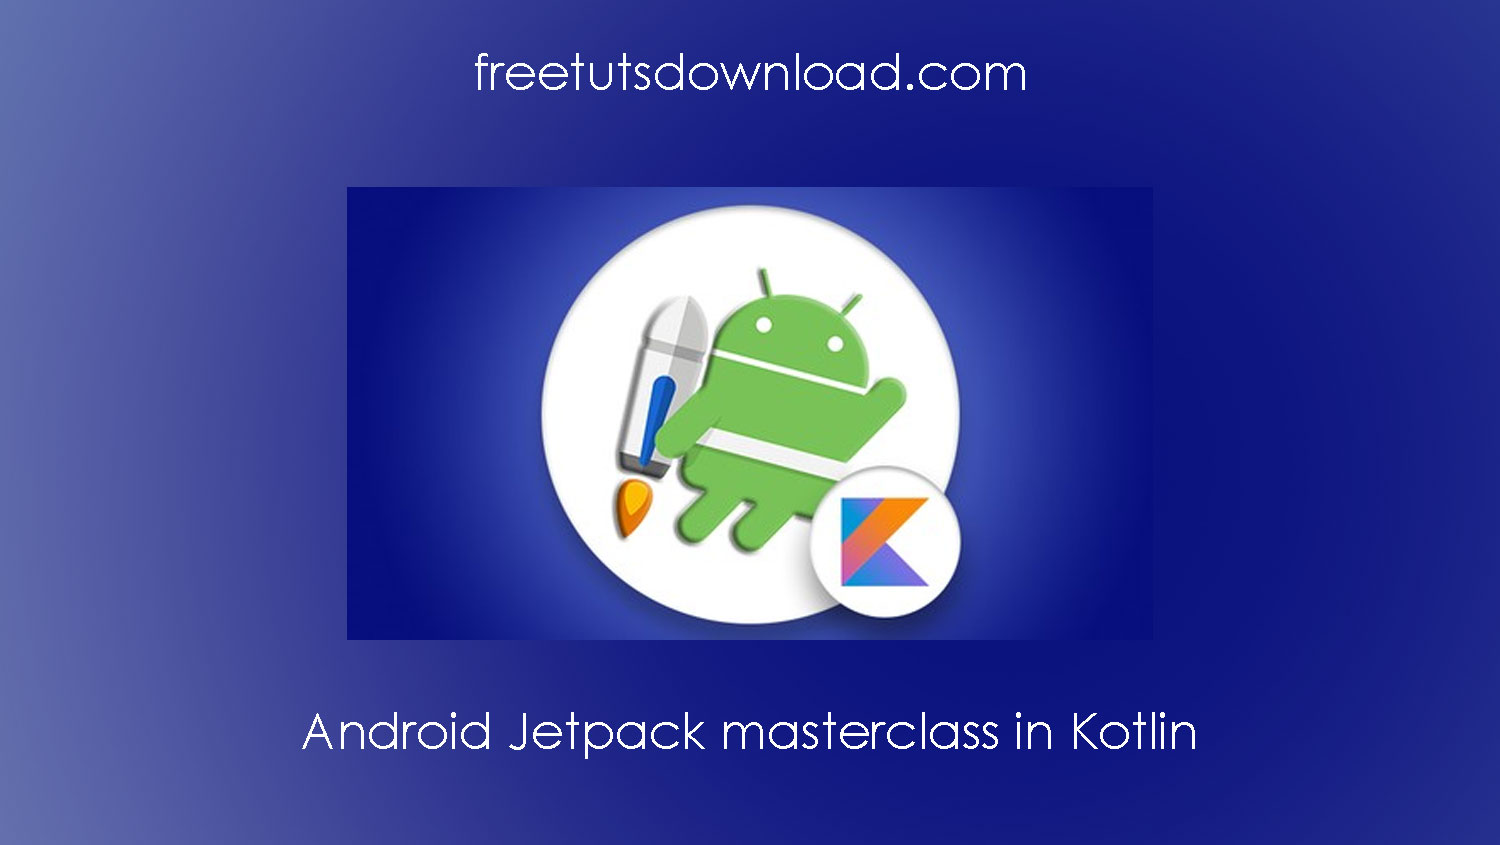 Android Jetpack masterclass in Kotlin Free Download